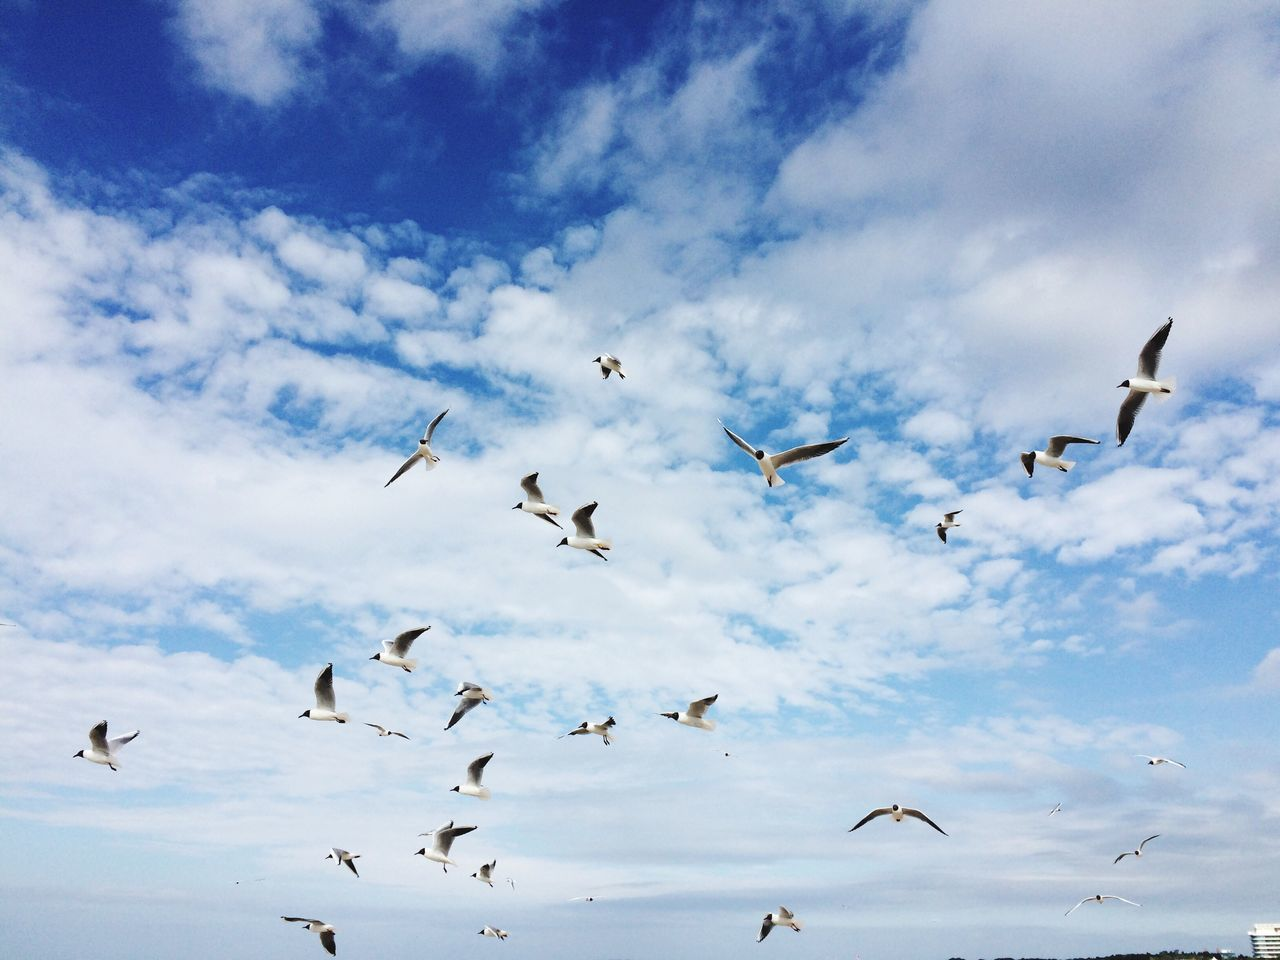 The Birds Bird Flying Animals In The Wild Animal Themes Animal Wildlife Large Group Of Animals Cloud - Sky Flock Of Birds Spread Wings Mid-air No People Day Nature Outdoors Togetherness Beauty In Nature Low Angle View